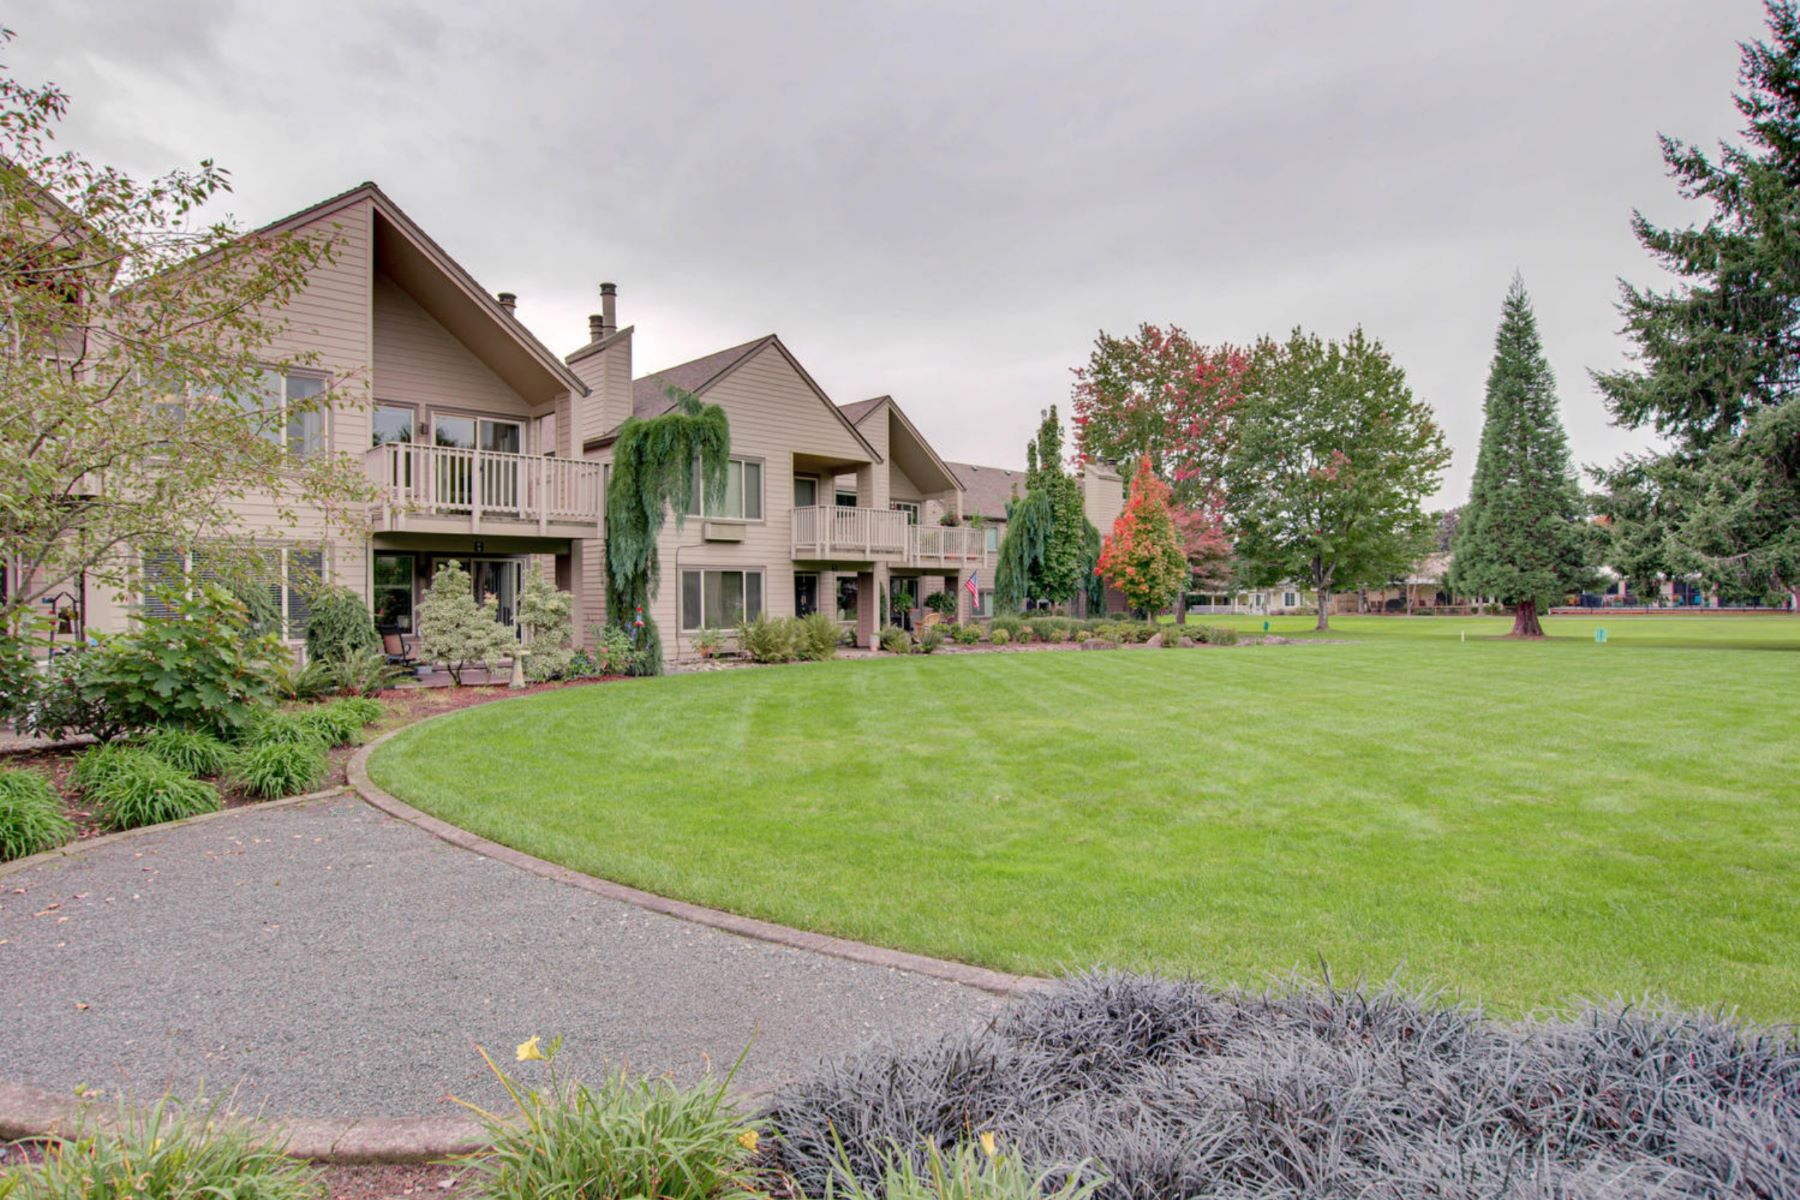 Condominiums for Sale at 2606 SE Baypoint Drive #21 2606 SE Baypoint Dr #21 Vancouver, Washington 98683 United States